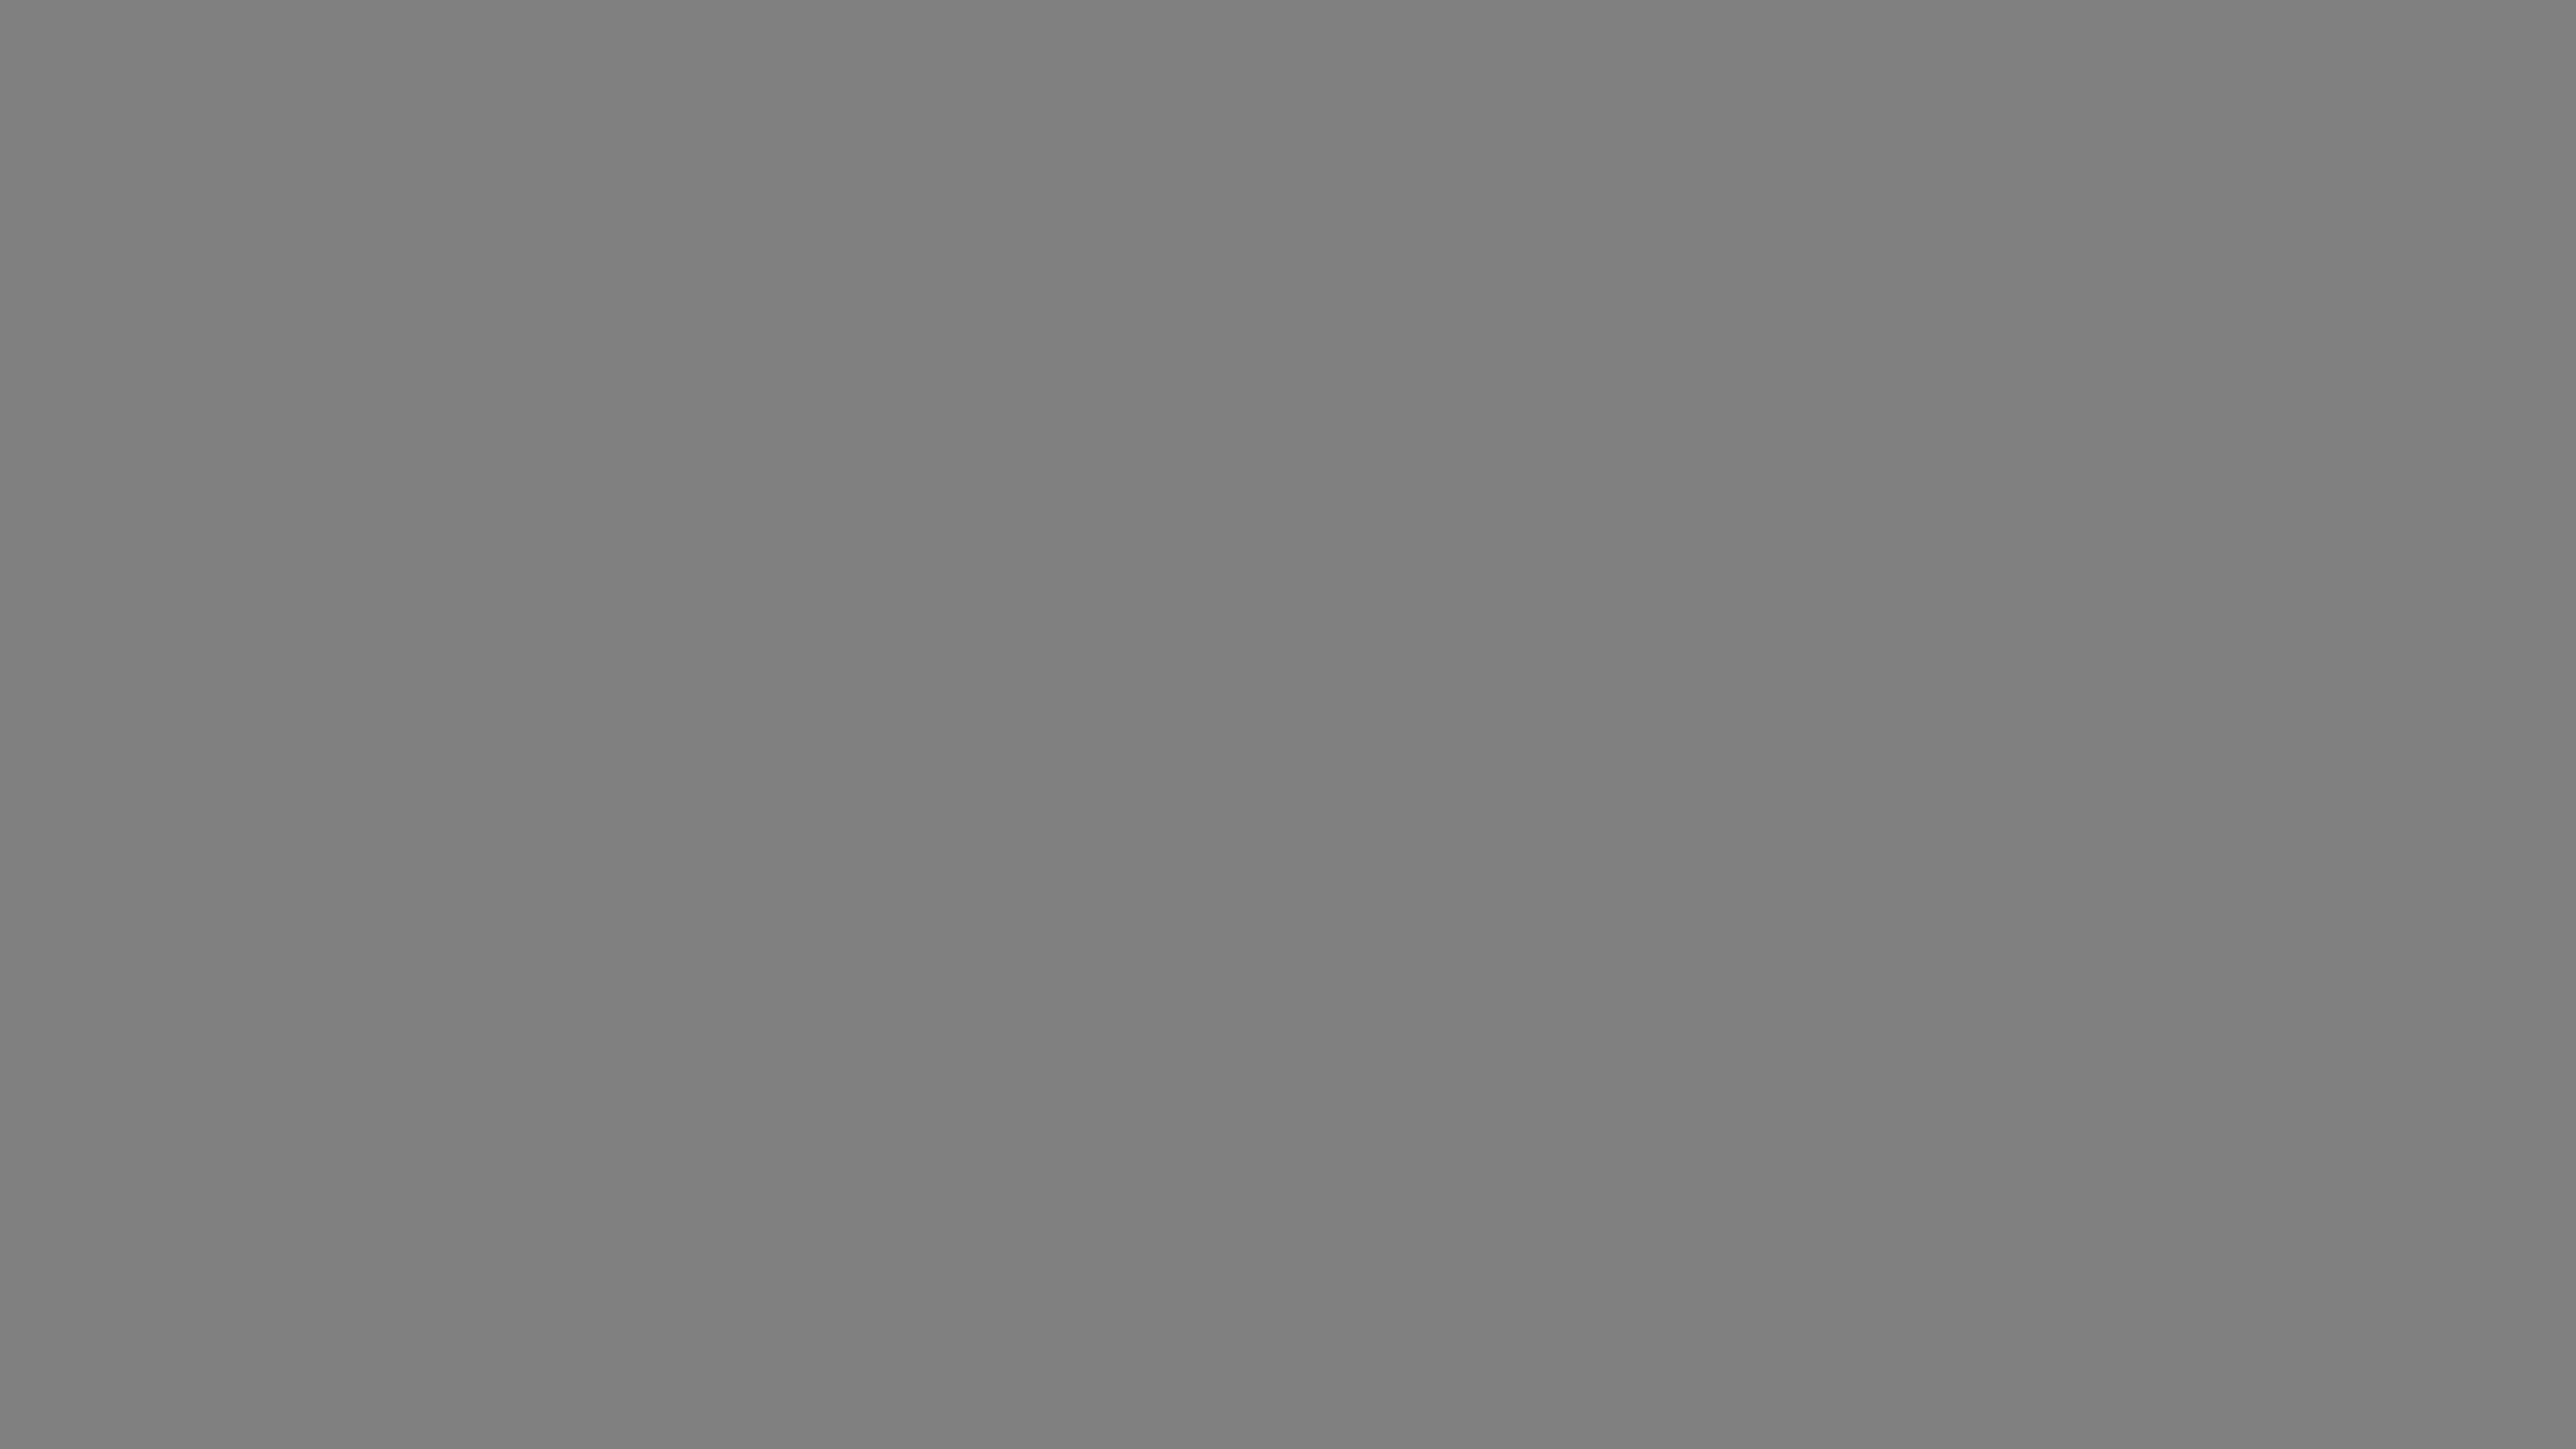 5120x2880 Trolley Grey Solid Color Background